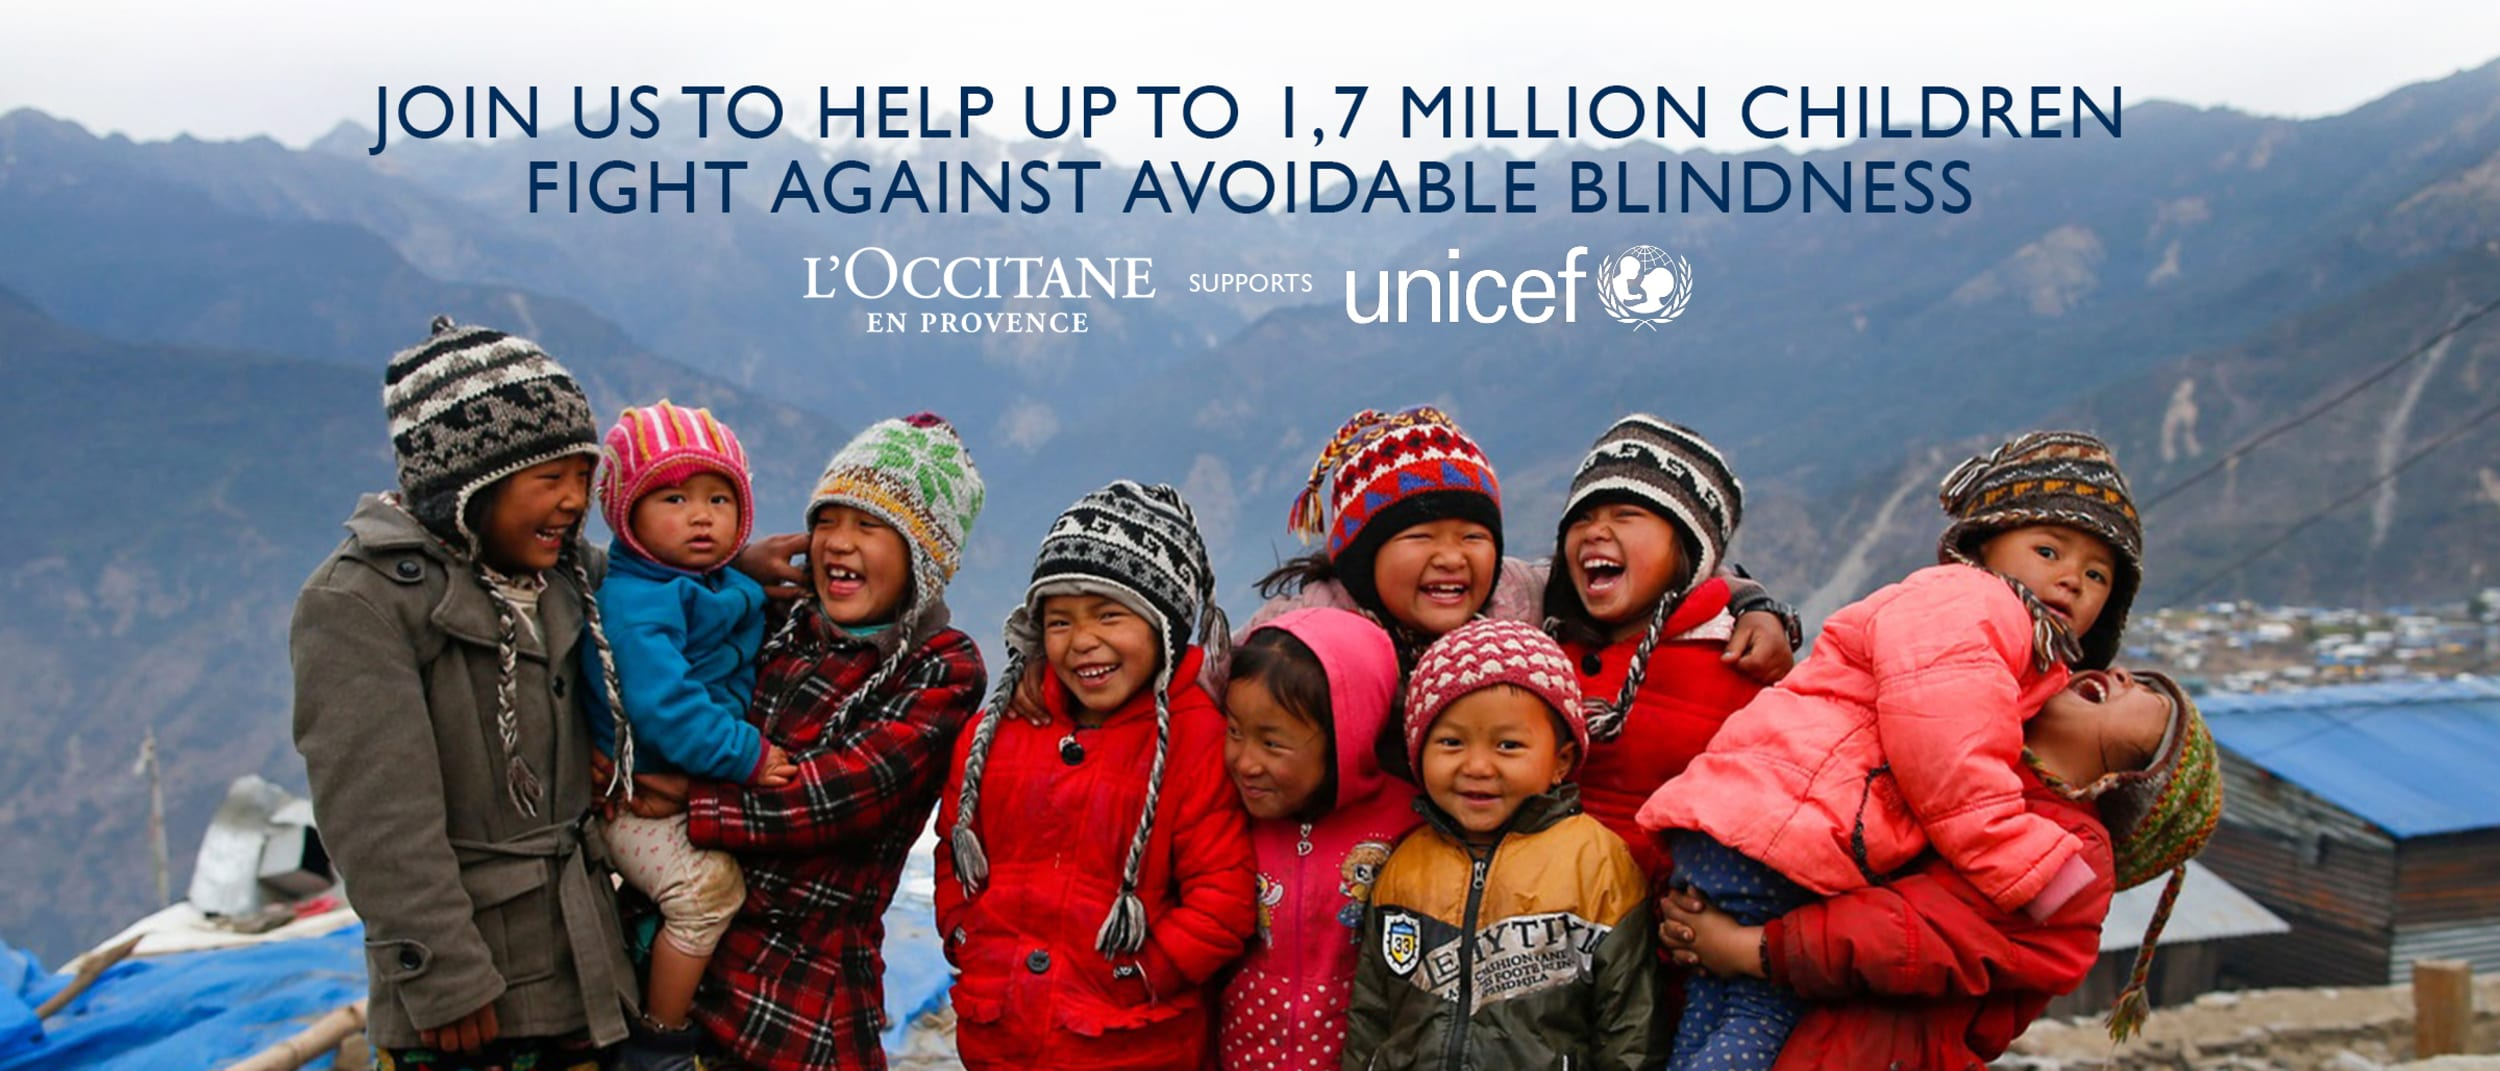 L'OCCITANE supports UNICEF - fighting against avoidable blindness